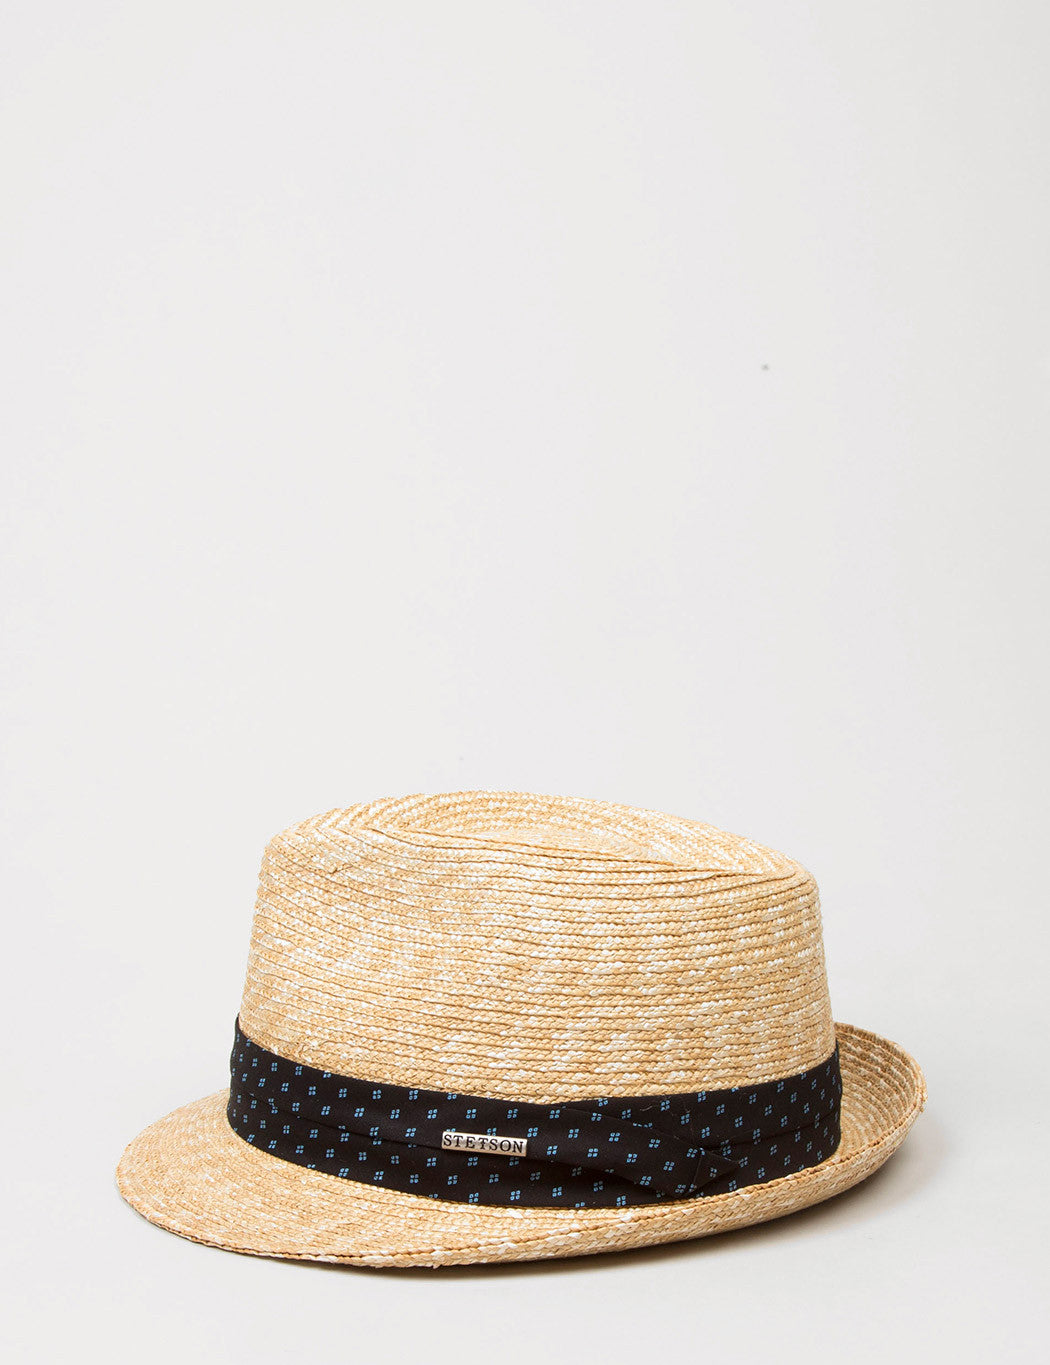 Stetson Ralston Wheat Straw Trilby Hat - Natural